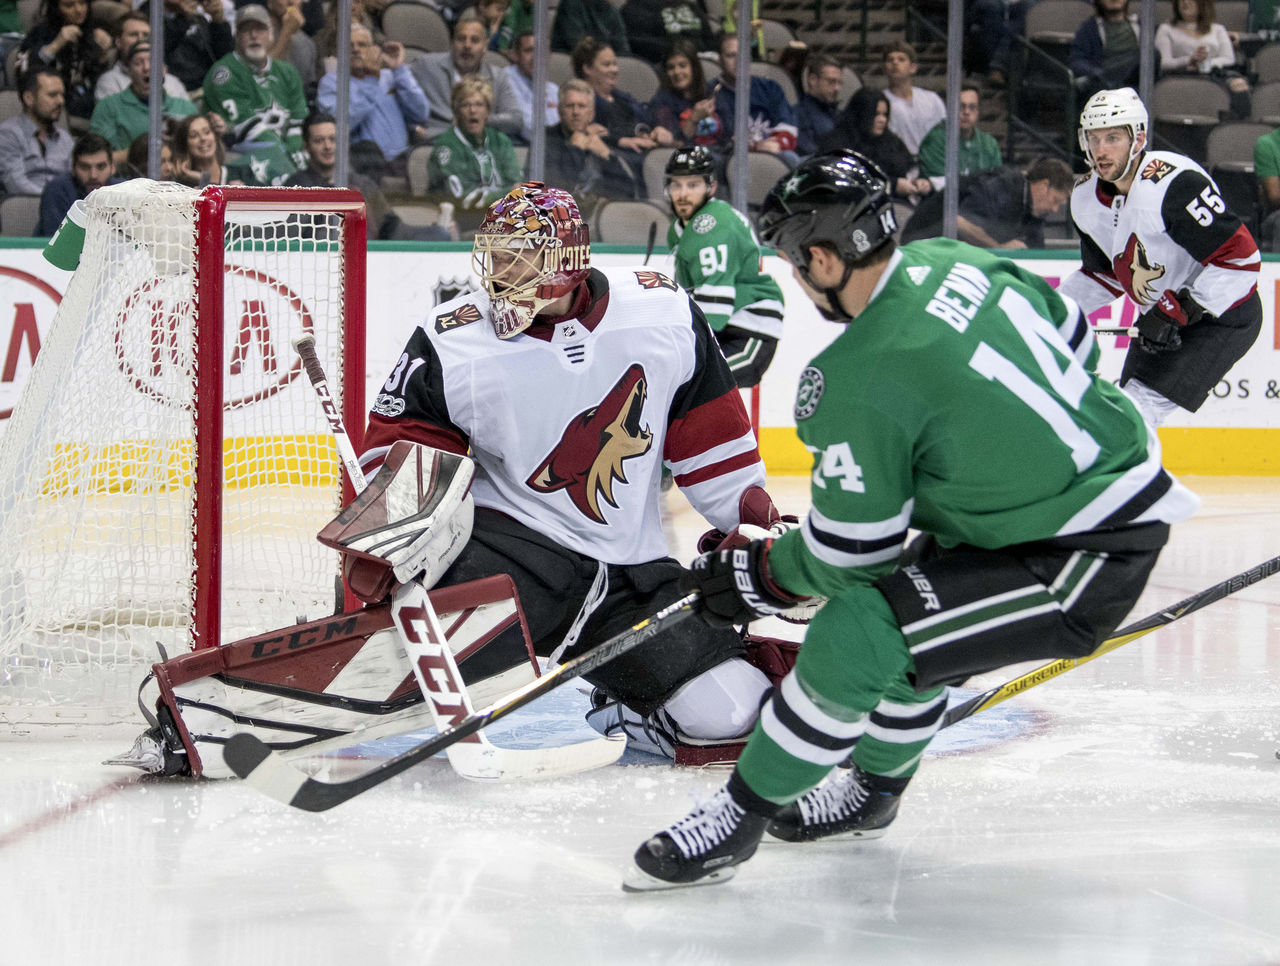 Cropped 2017 10 18t022714z 596605446 nocid rtrmadp 3 nhl arizona coyotes at dallas stars